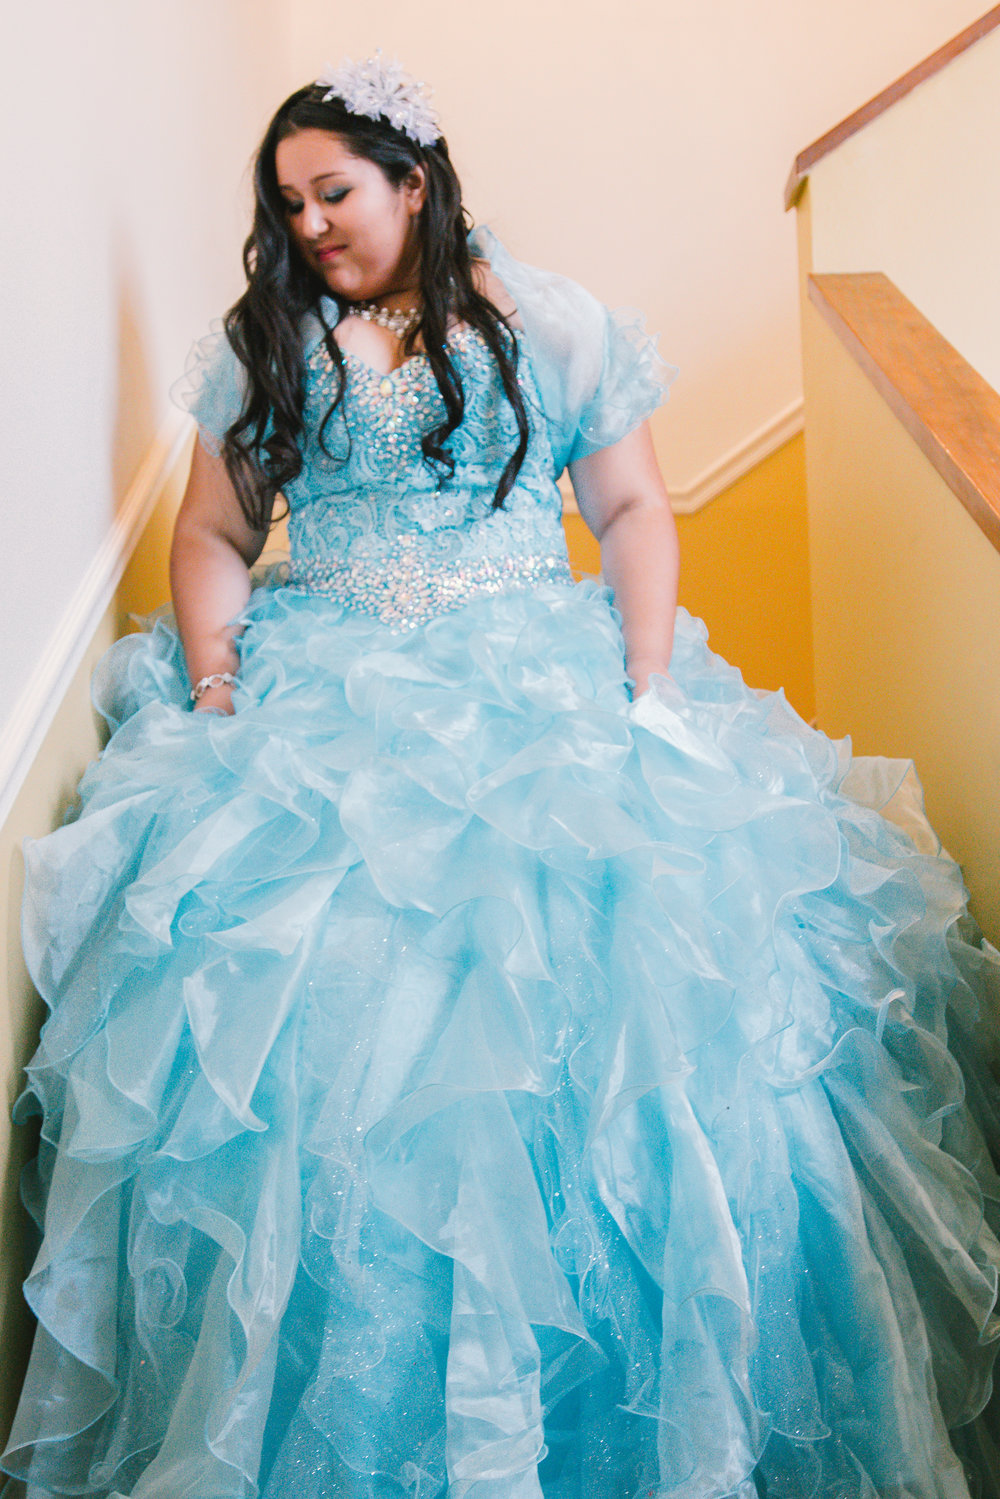 Wesley Chapel Quinceañera Birthday Party | Johana — Tampa wedding ...